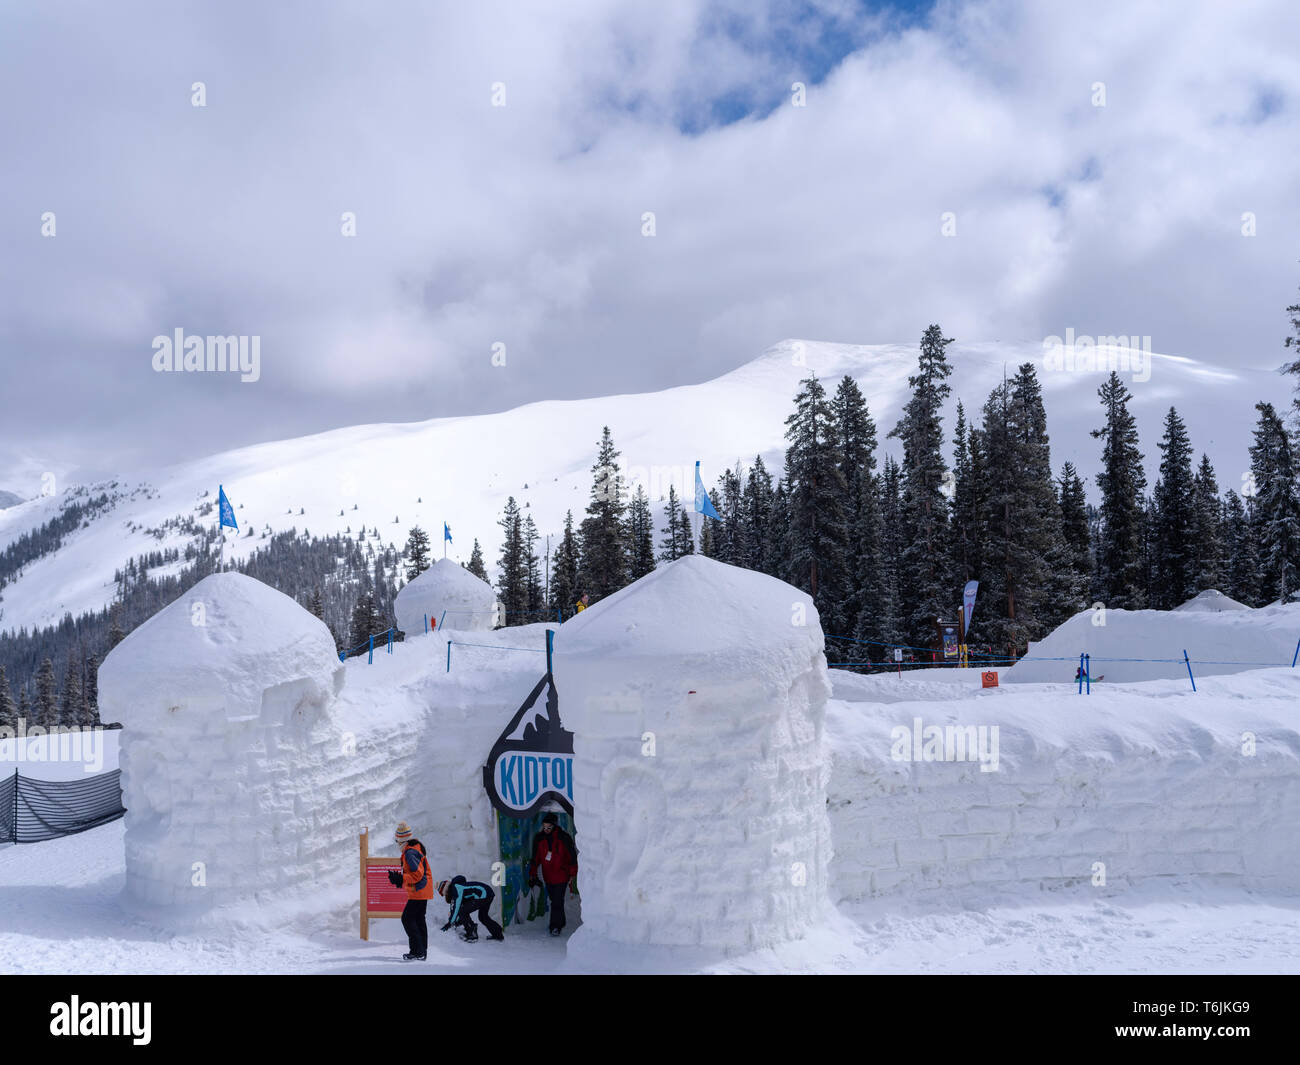 Snow Fort at Keystone Ski Resort, Keystone, Colorado, USA. - Stock Image